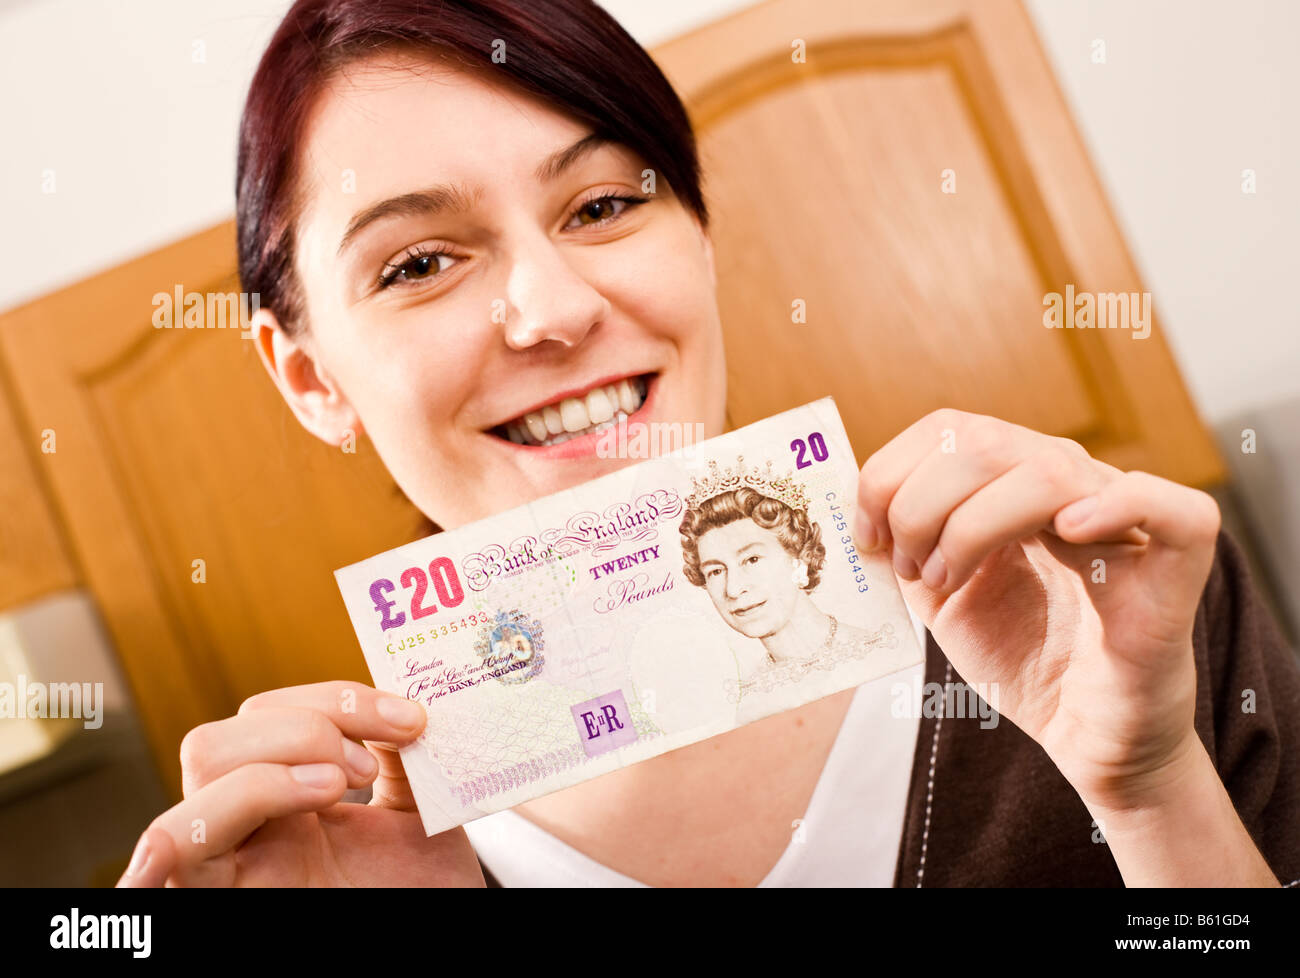 Young woman at home holding a 20 note and smiling looking at camera - Stock Image